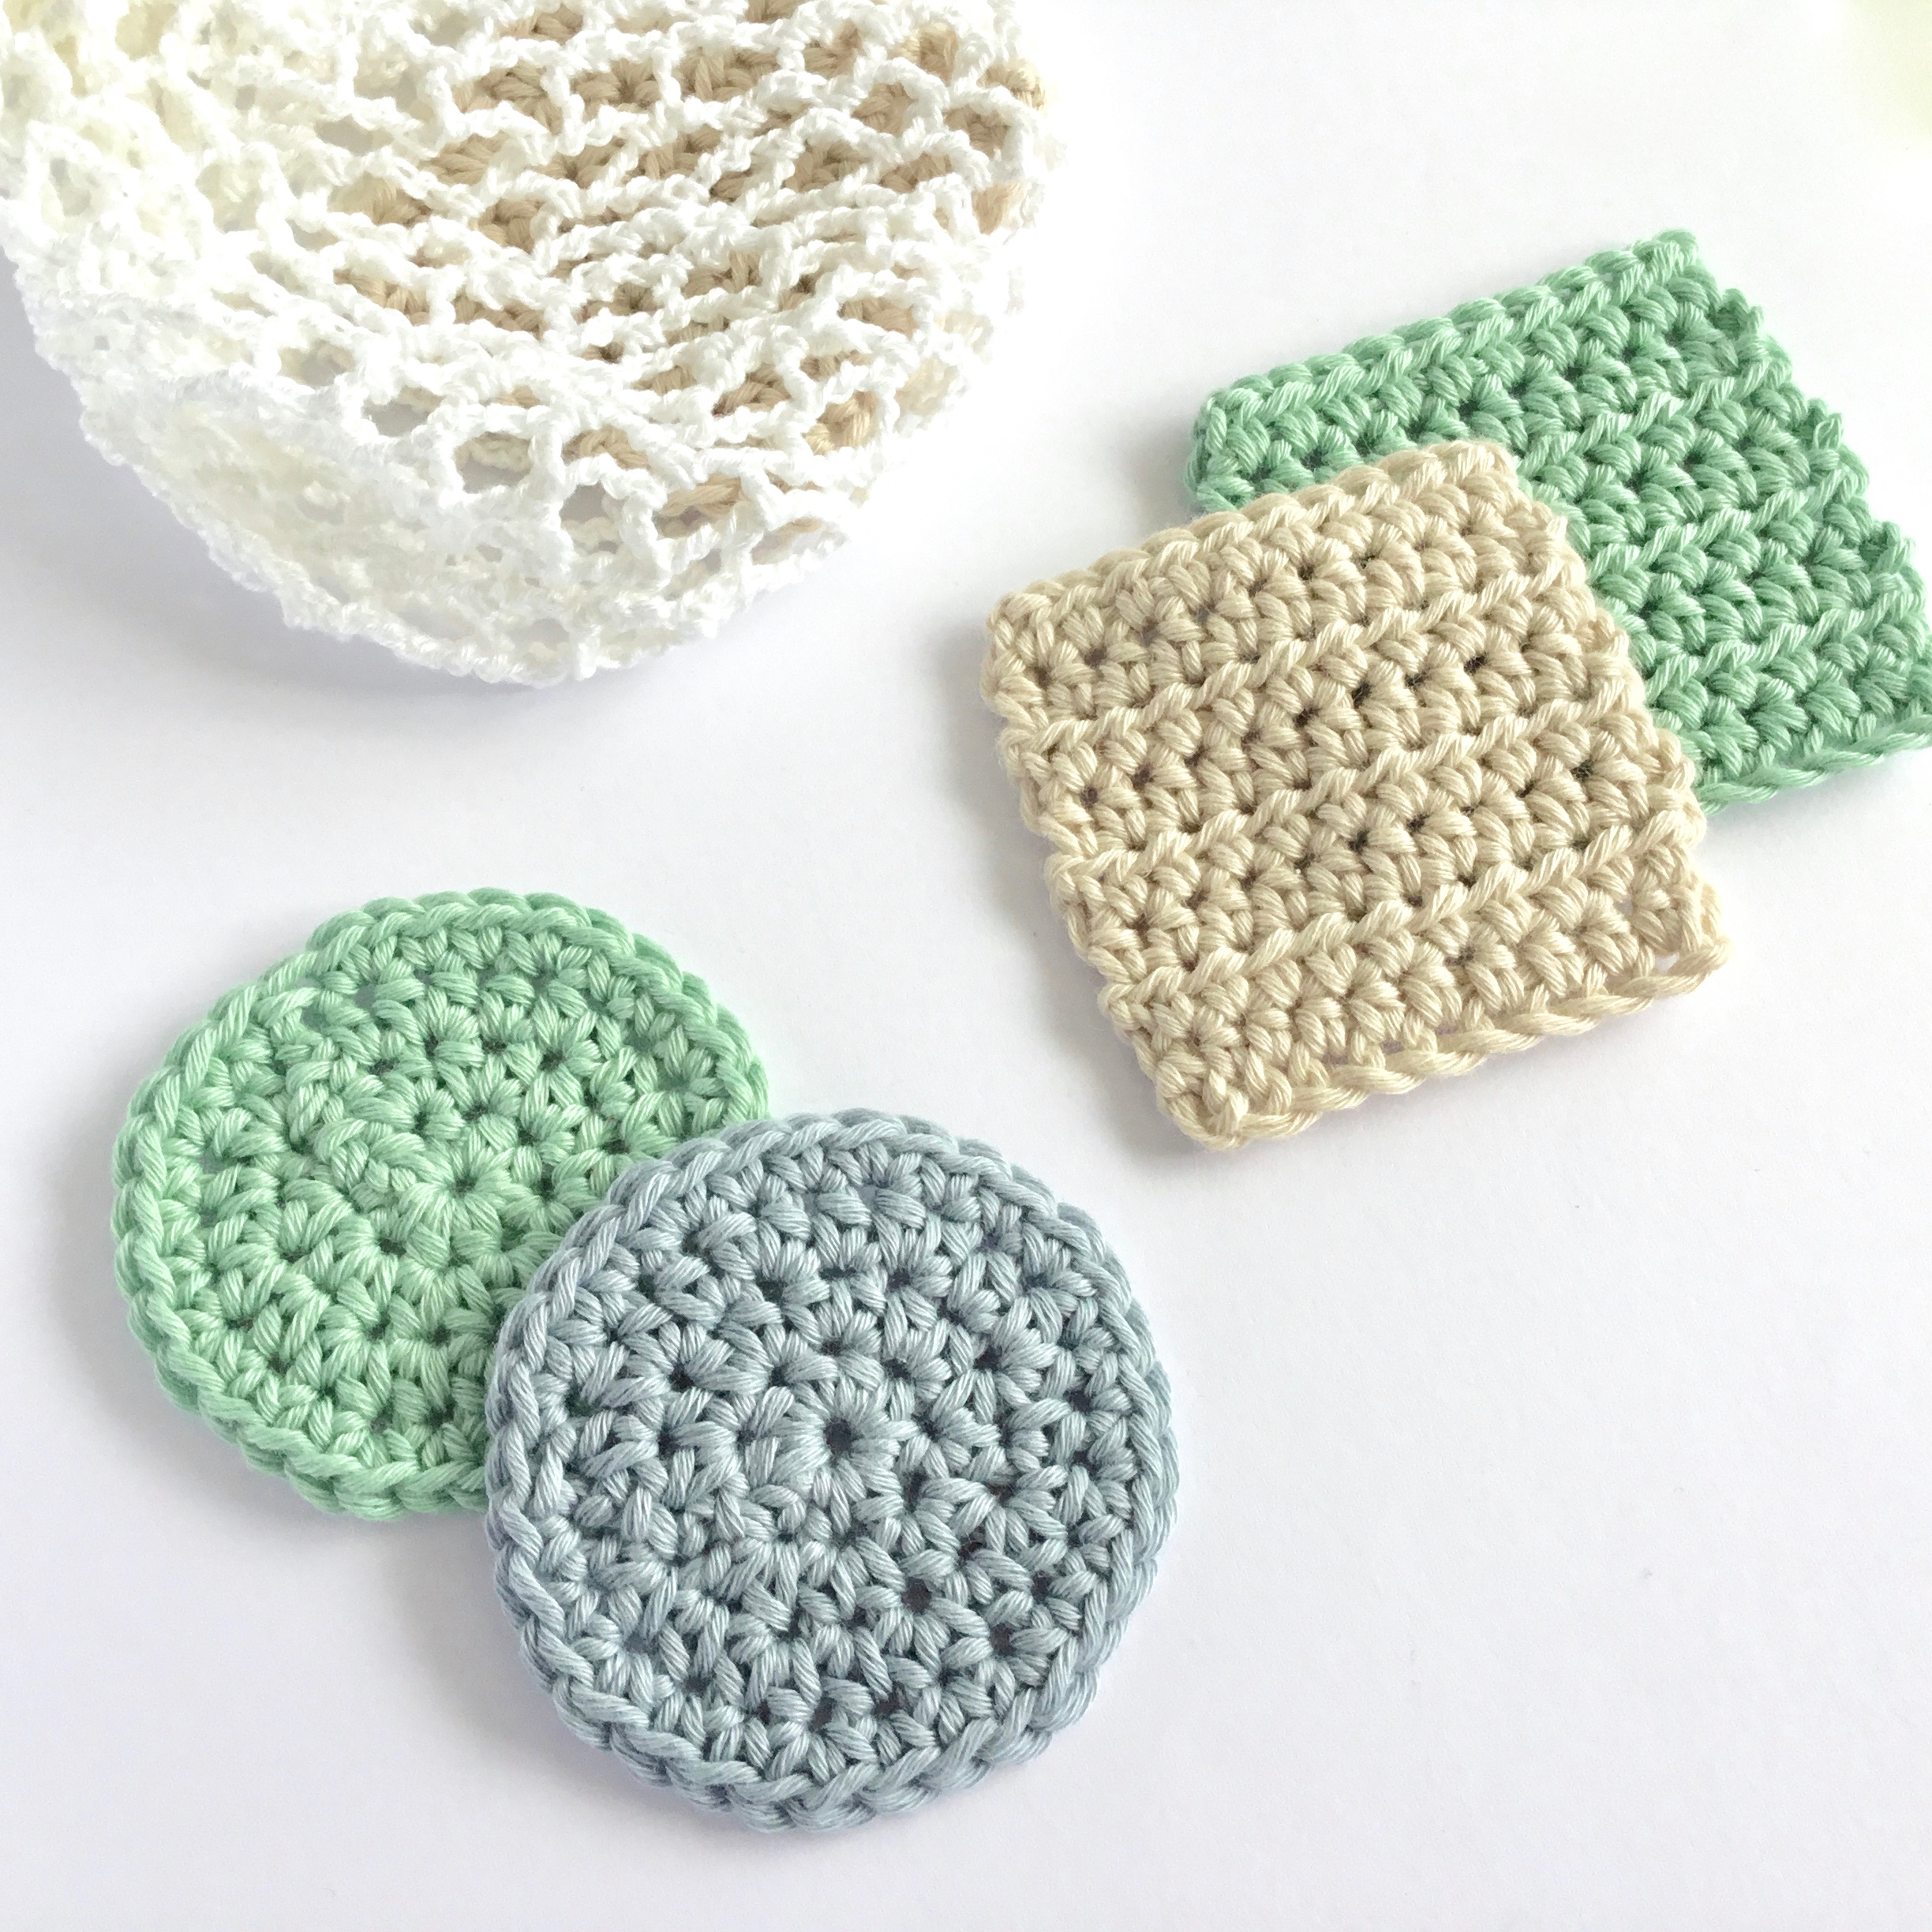 Face Scrubbies and Mesh Bag Crochet Patterns